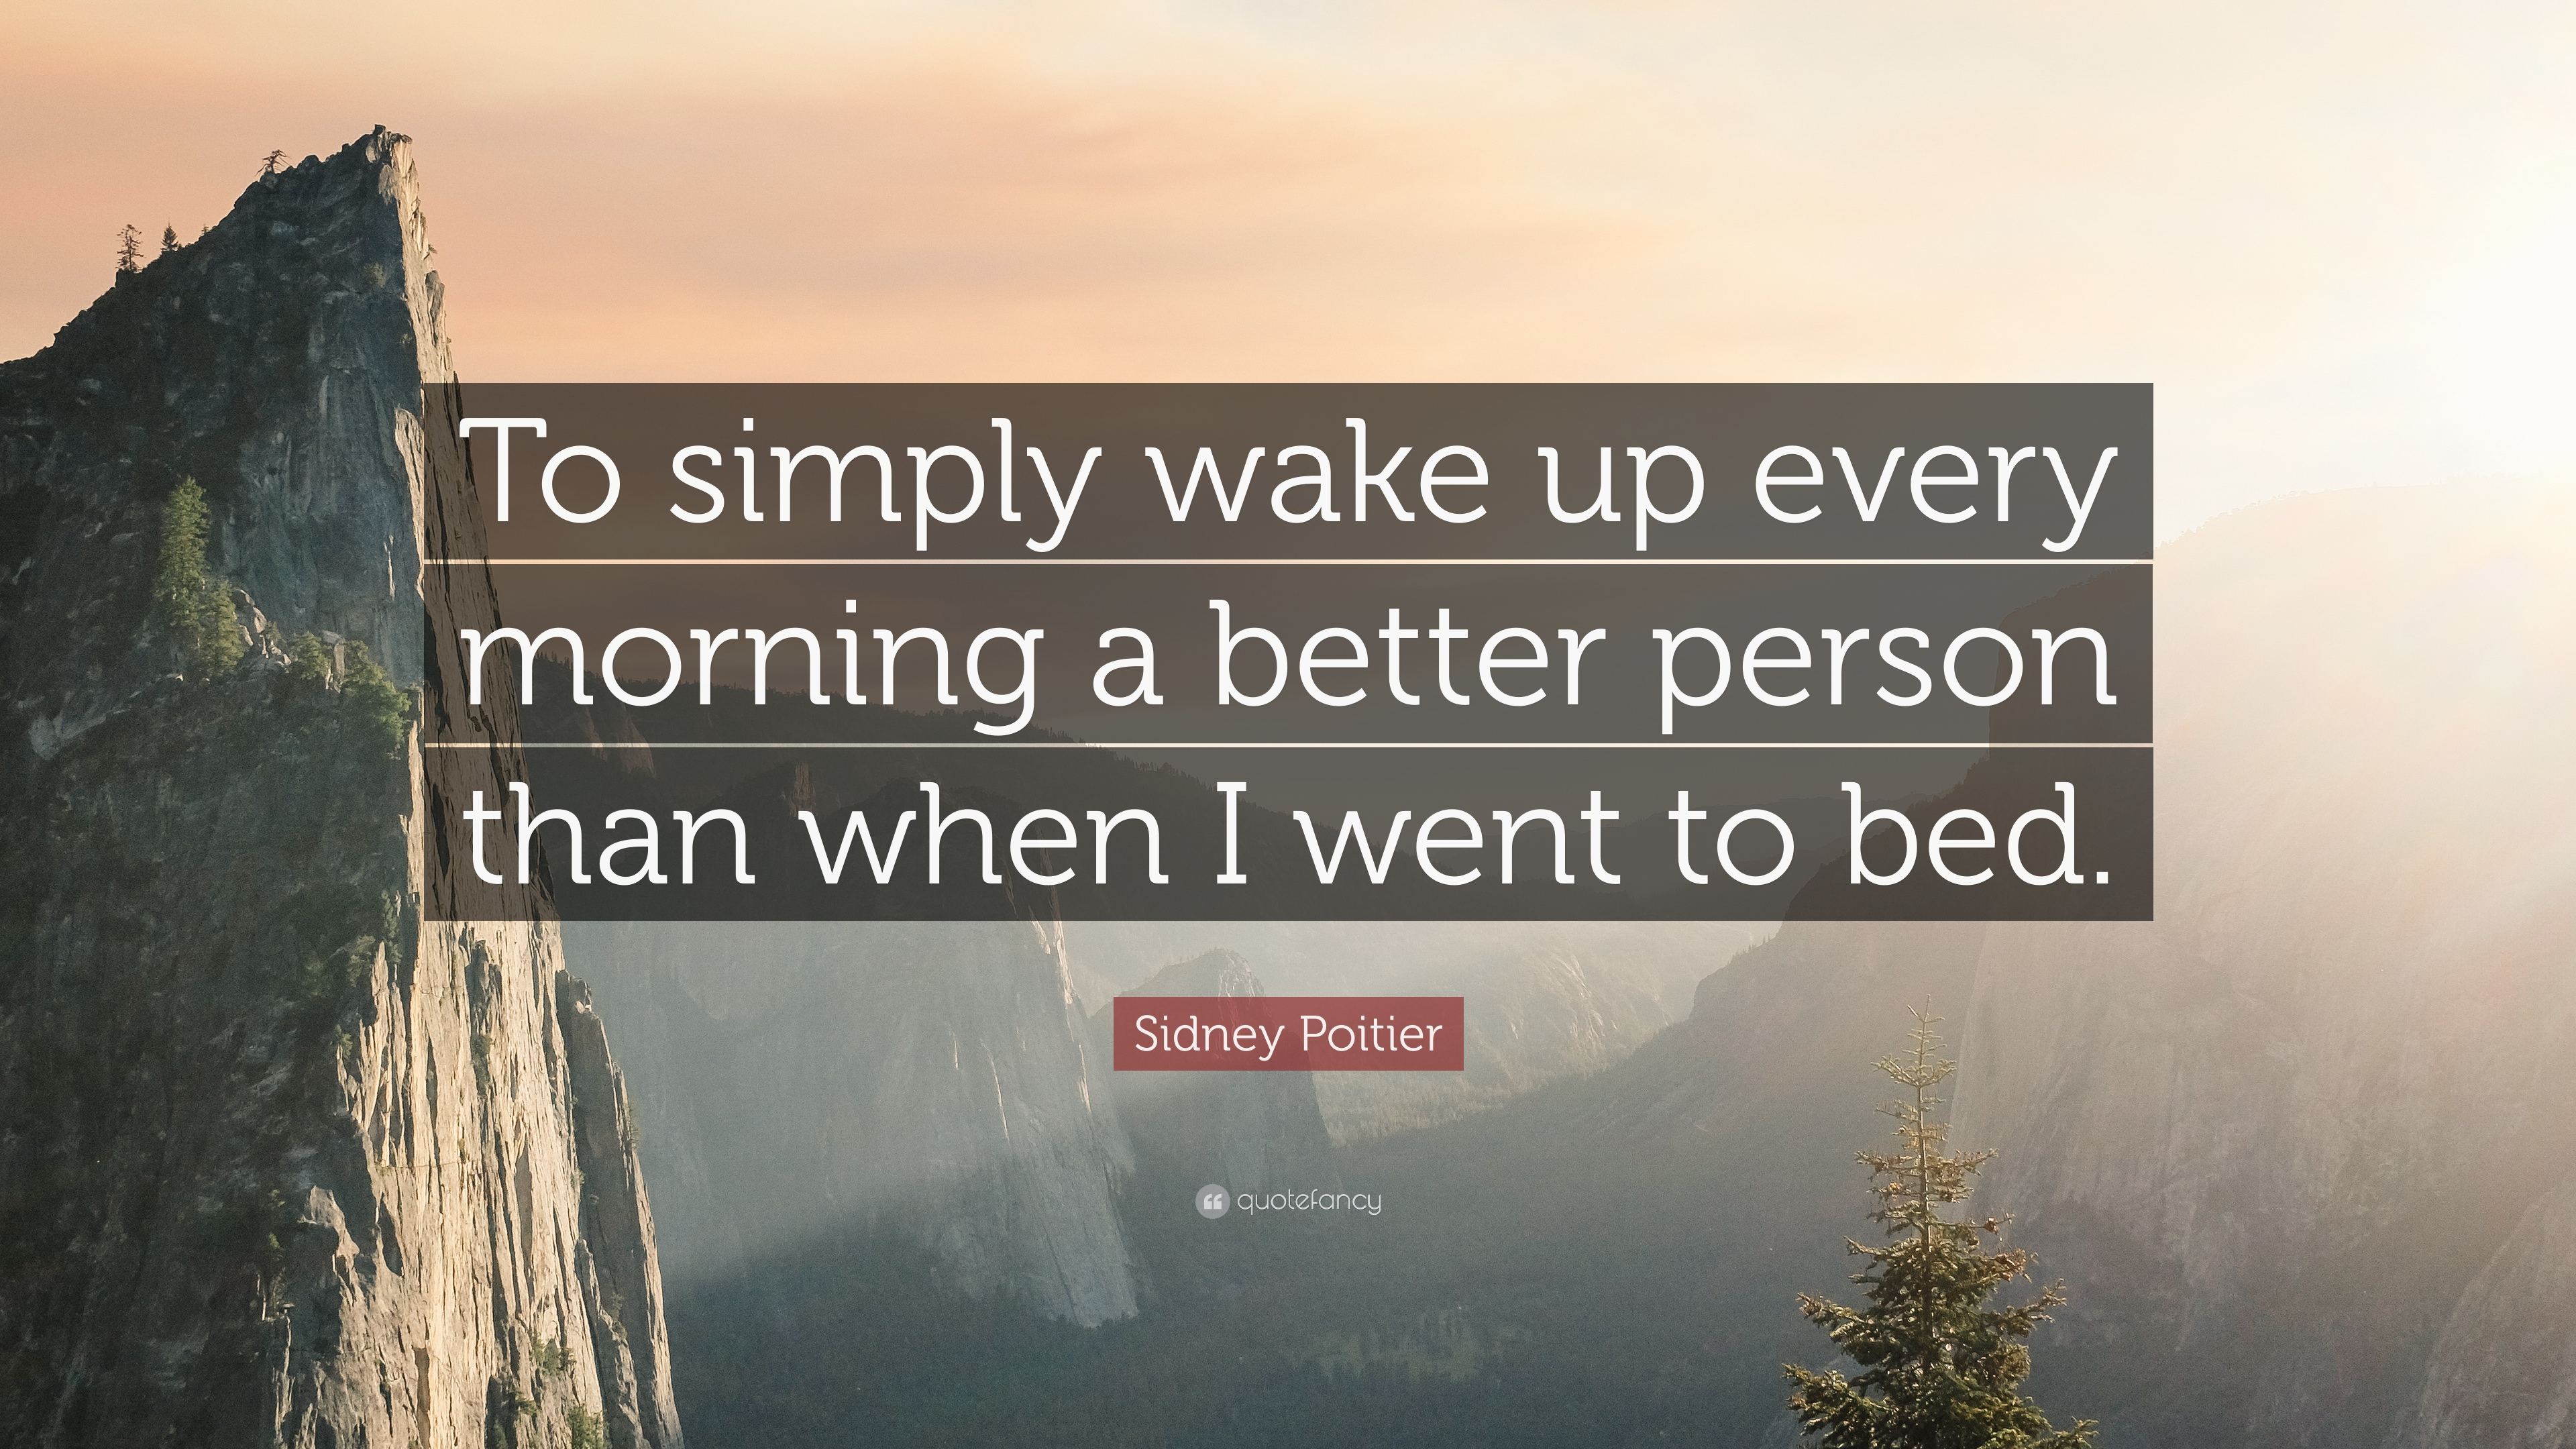 Sidney poitier quote to simply wake up every morning a better person than when i went to bed - Seven reasons to make the bed every morning ...